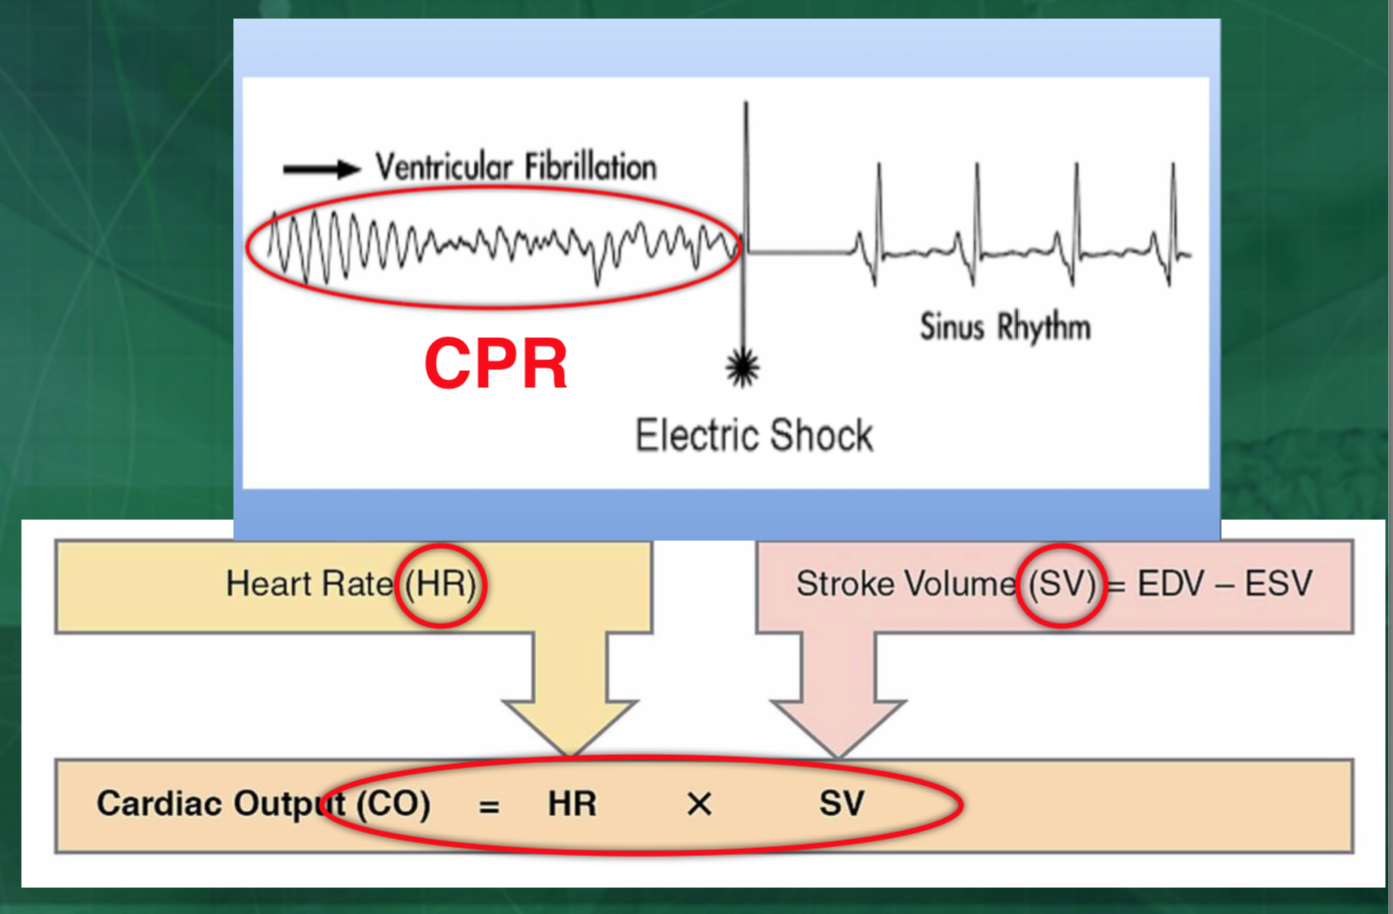 …………………………………………… CO ( during CPR) = HR (compression rate) X SV (depth of compression) ……………………………………………